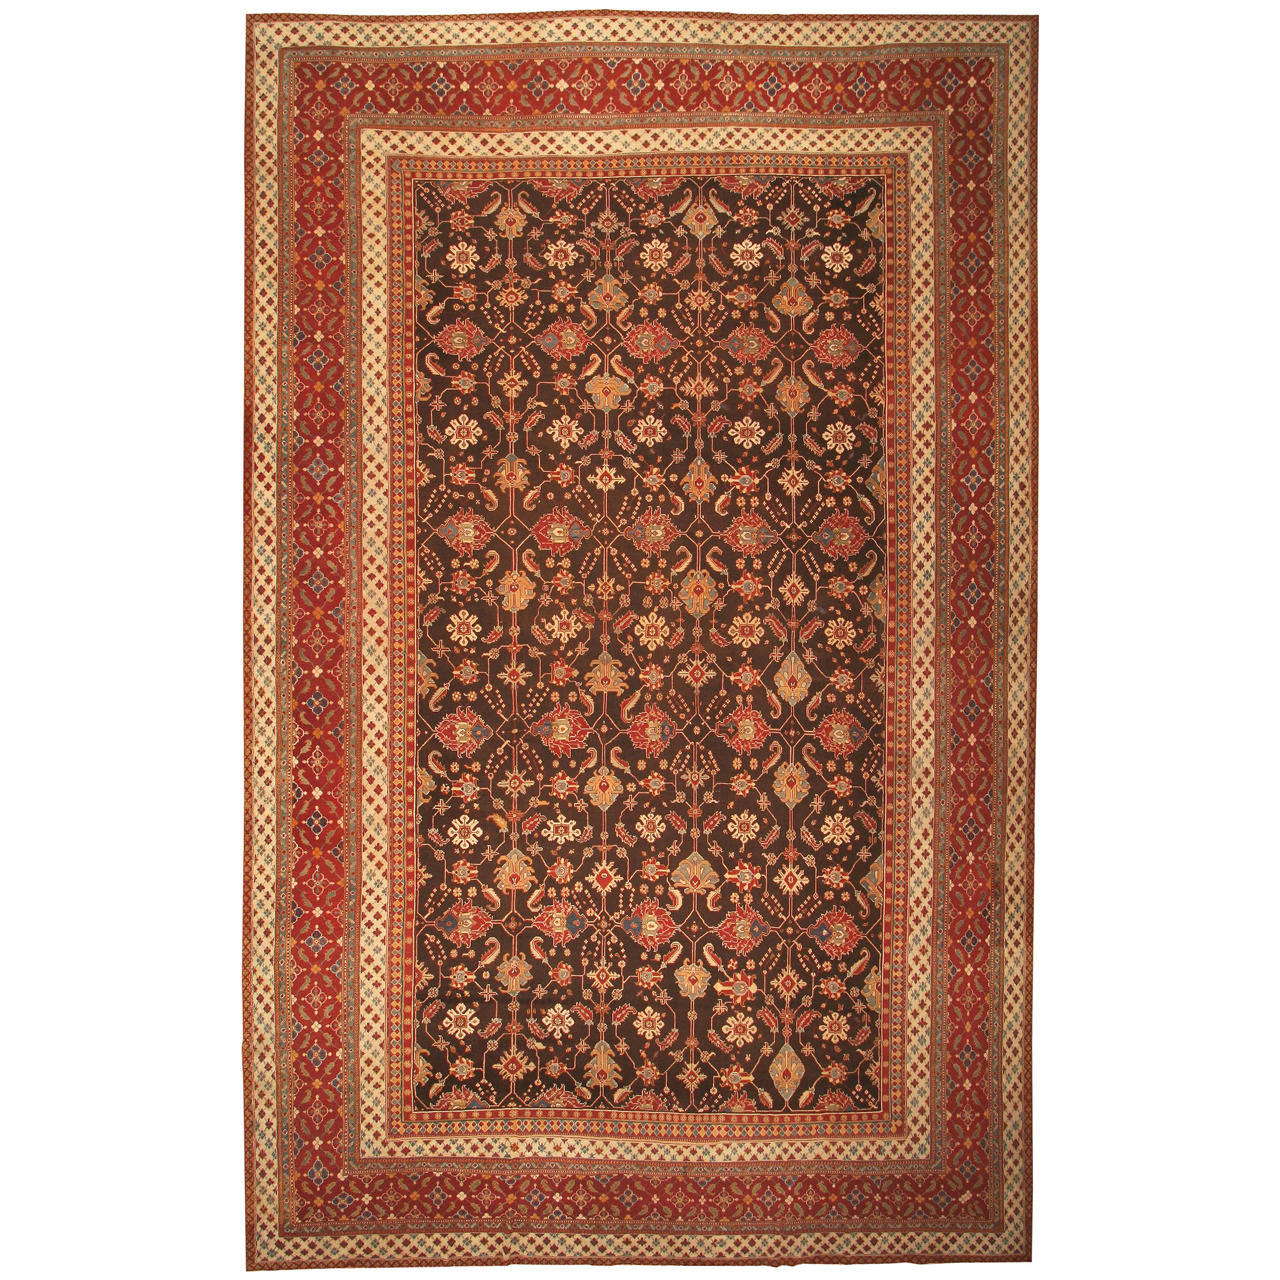 Antique Oriental Indian Agra Rug Or Carpet For Sale At 1stdibs